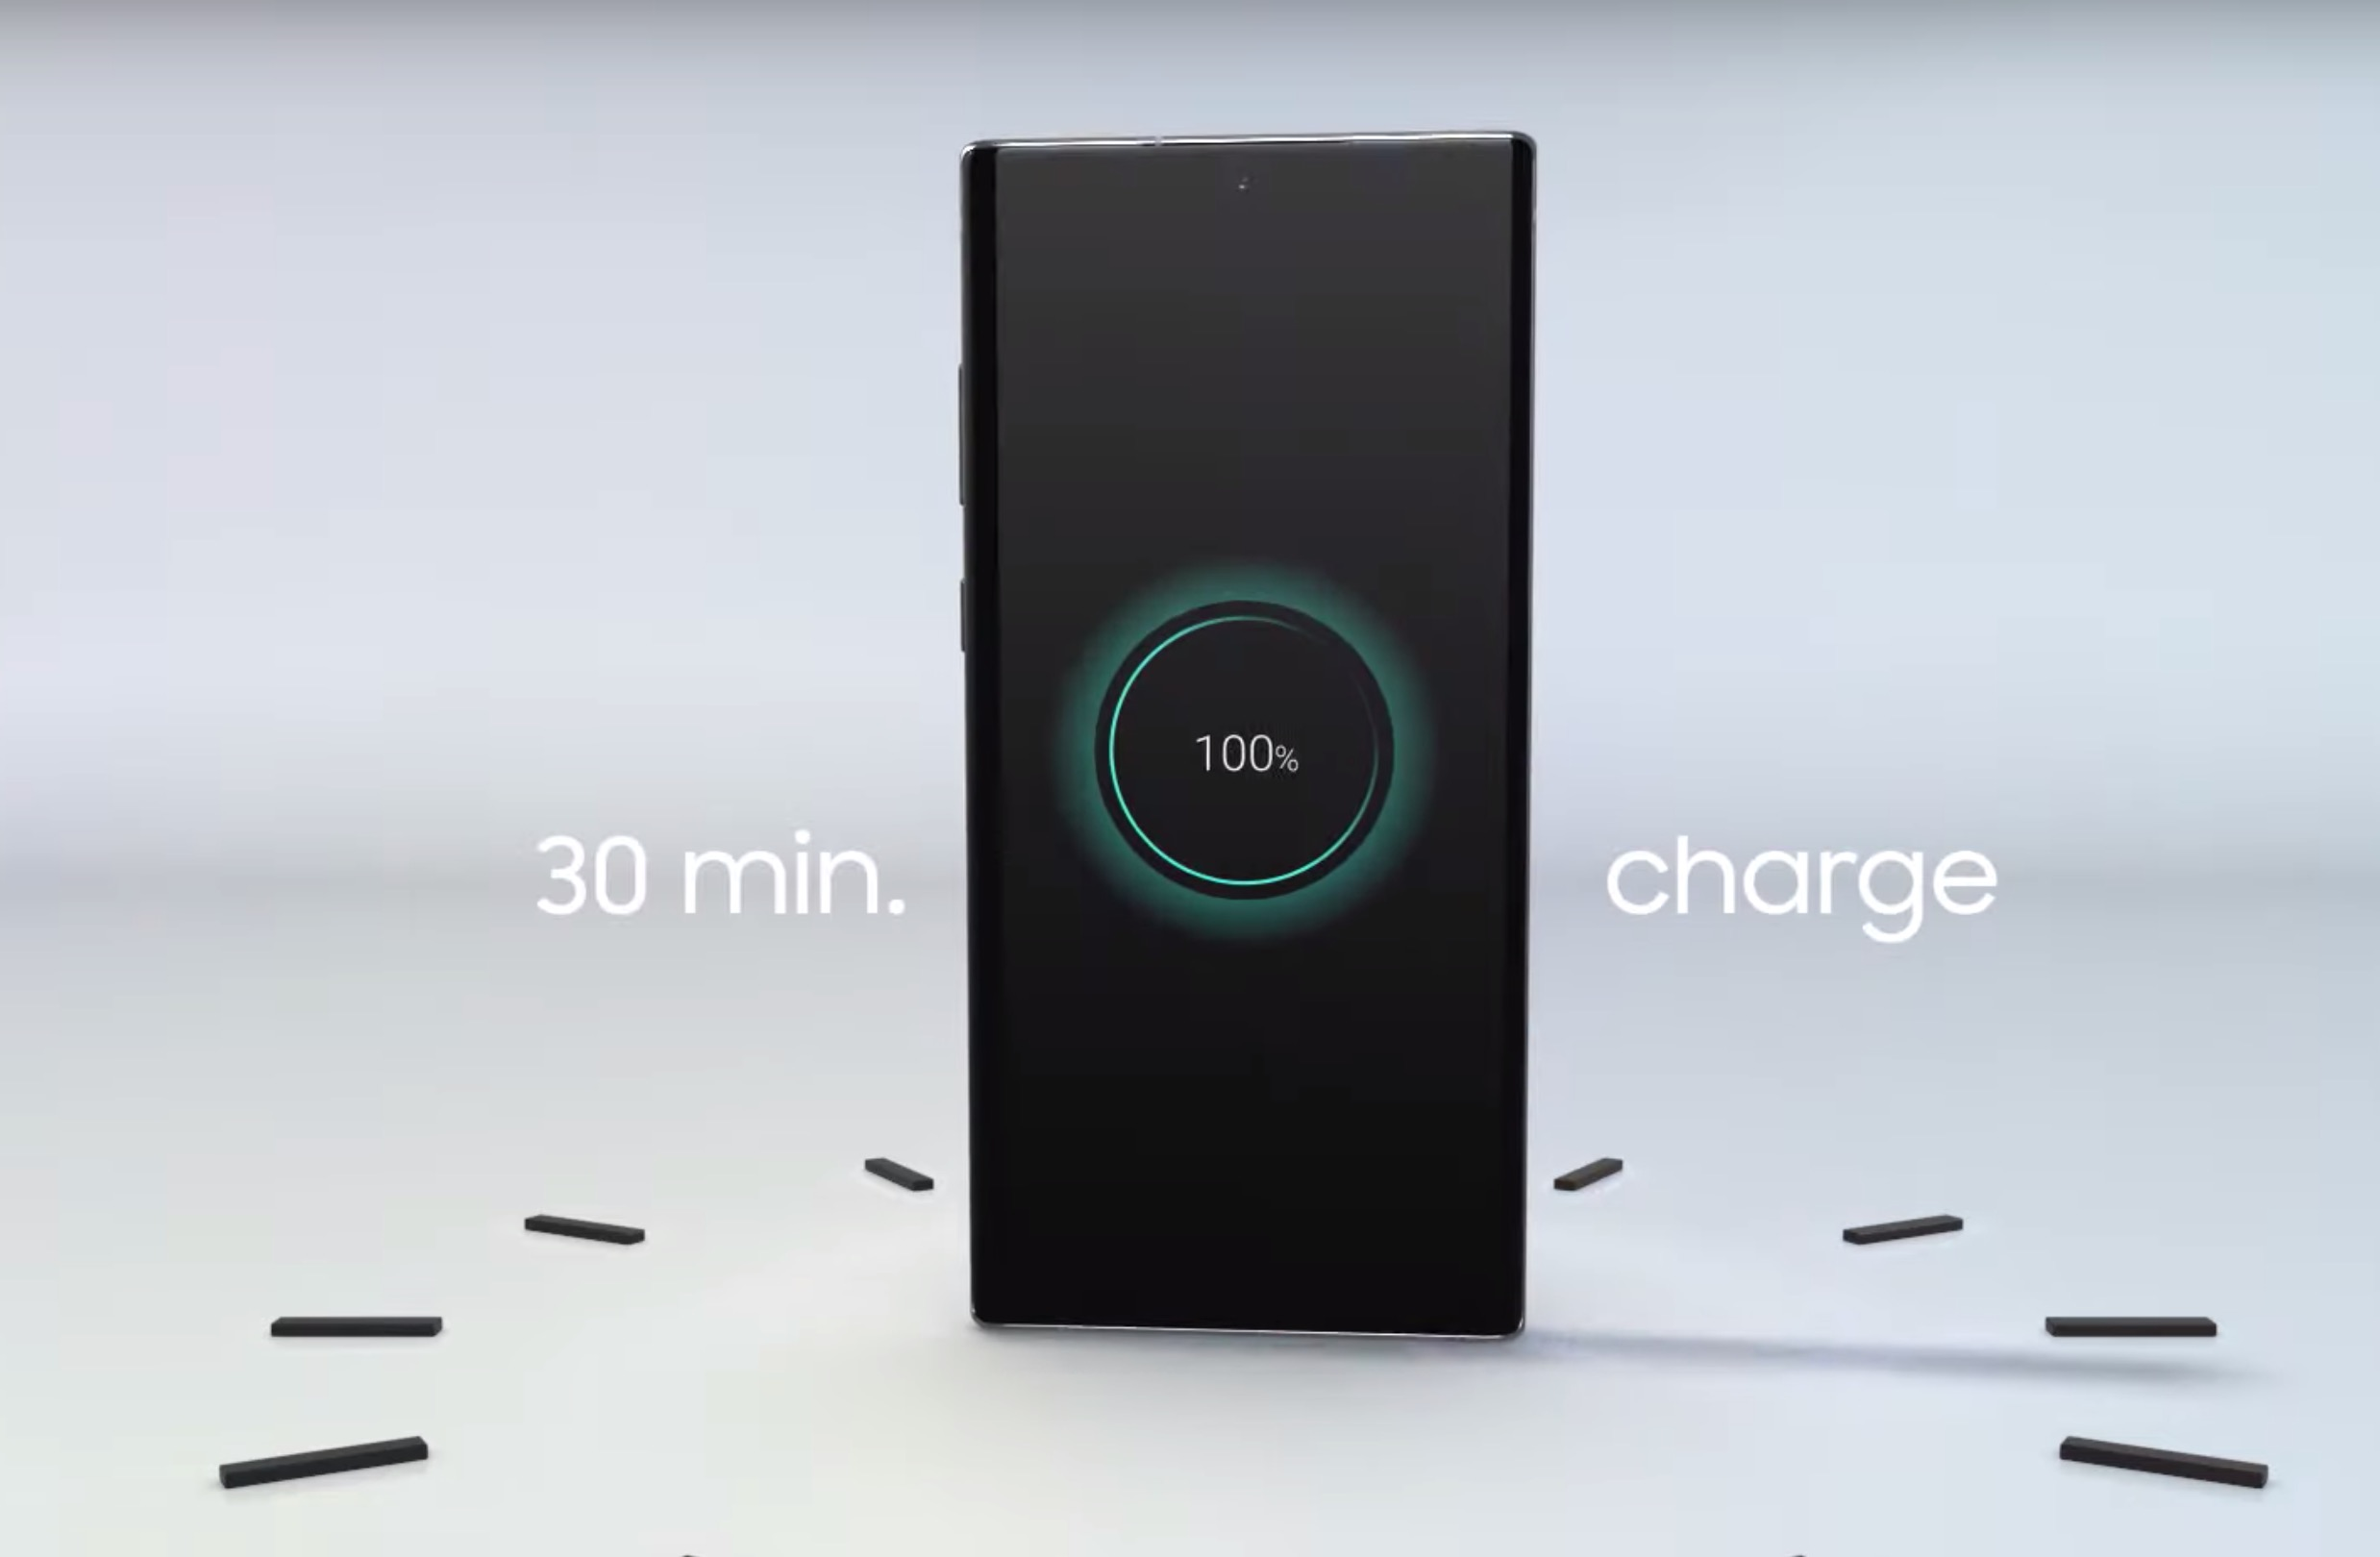 You can completely recharge the Galaxy Note 10 in just 30 minutes.